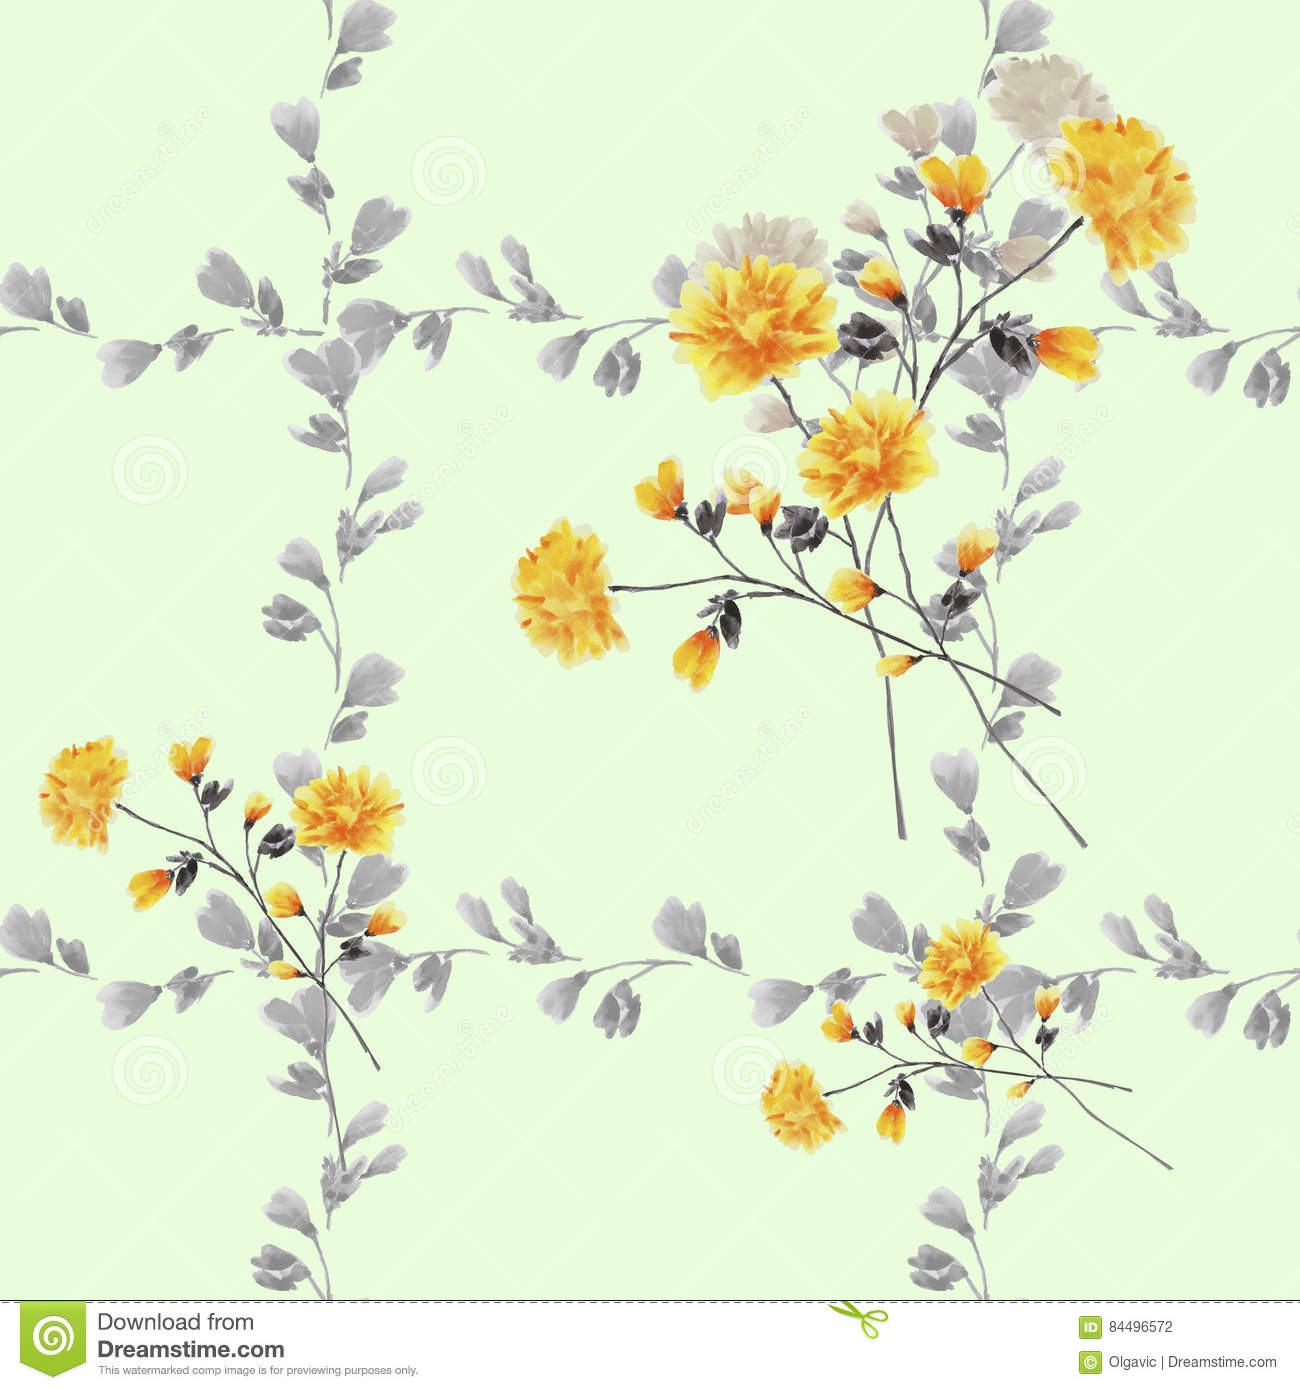 Seamless Pattern Small Yellow Flowers And Bouquets And Gray Branches